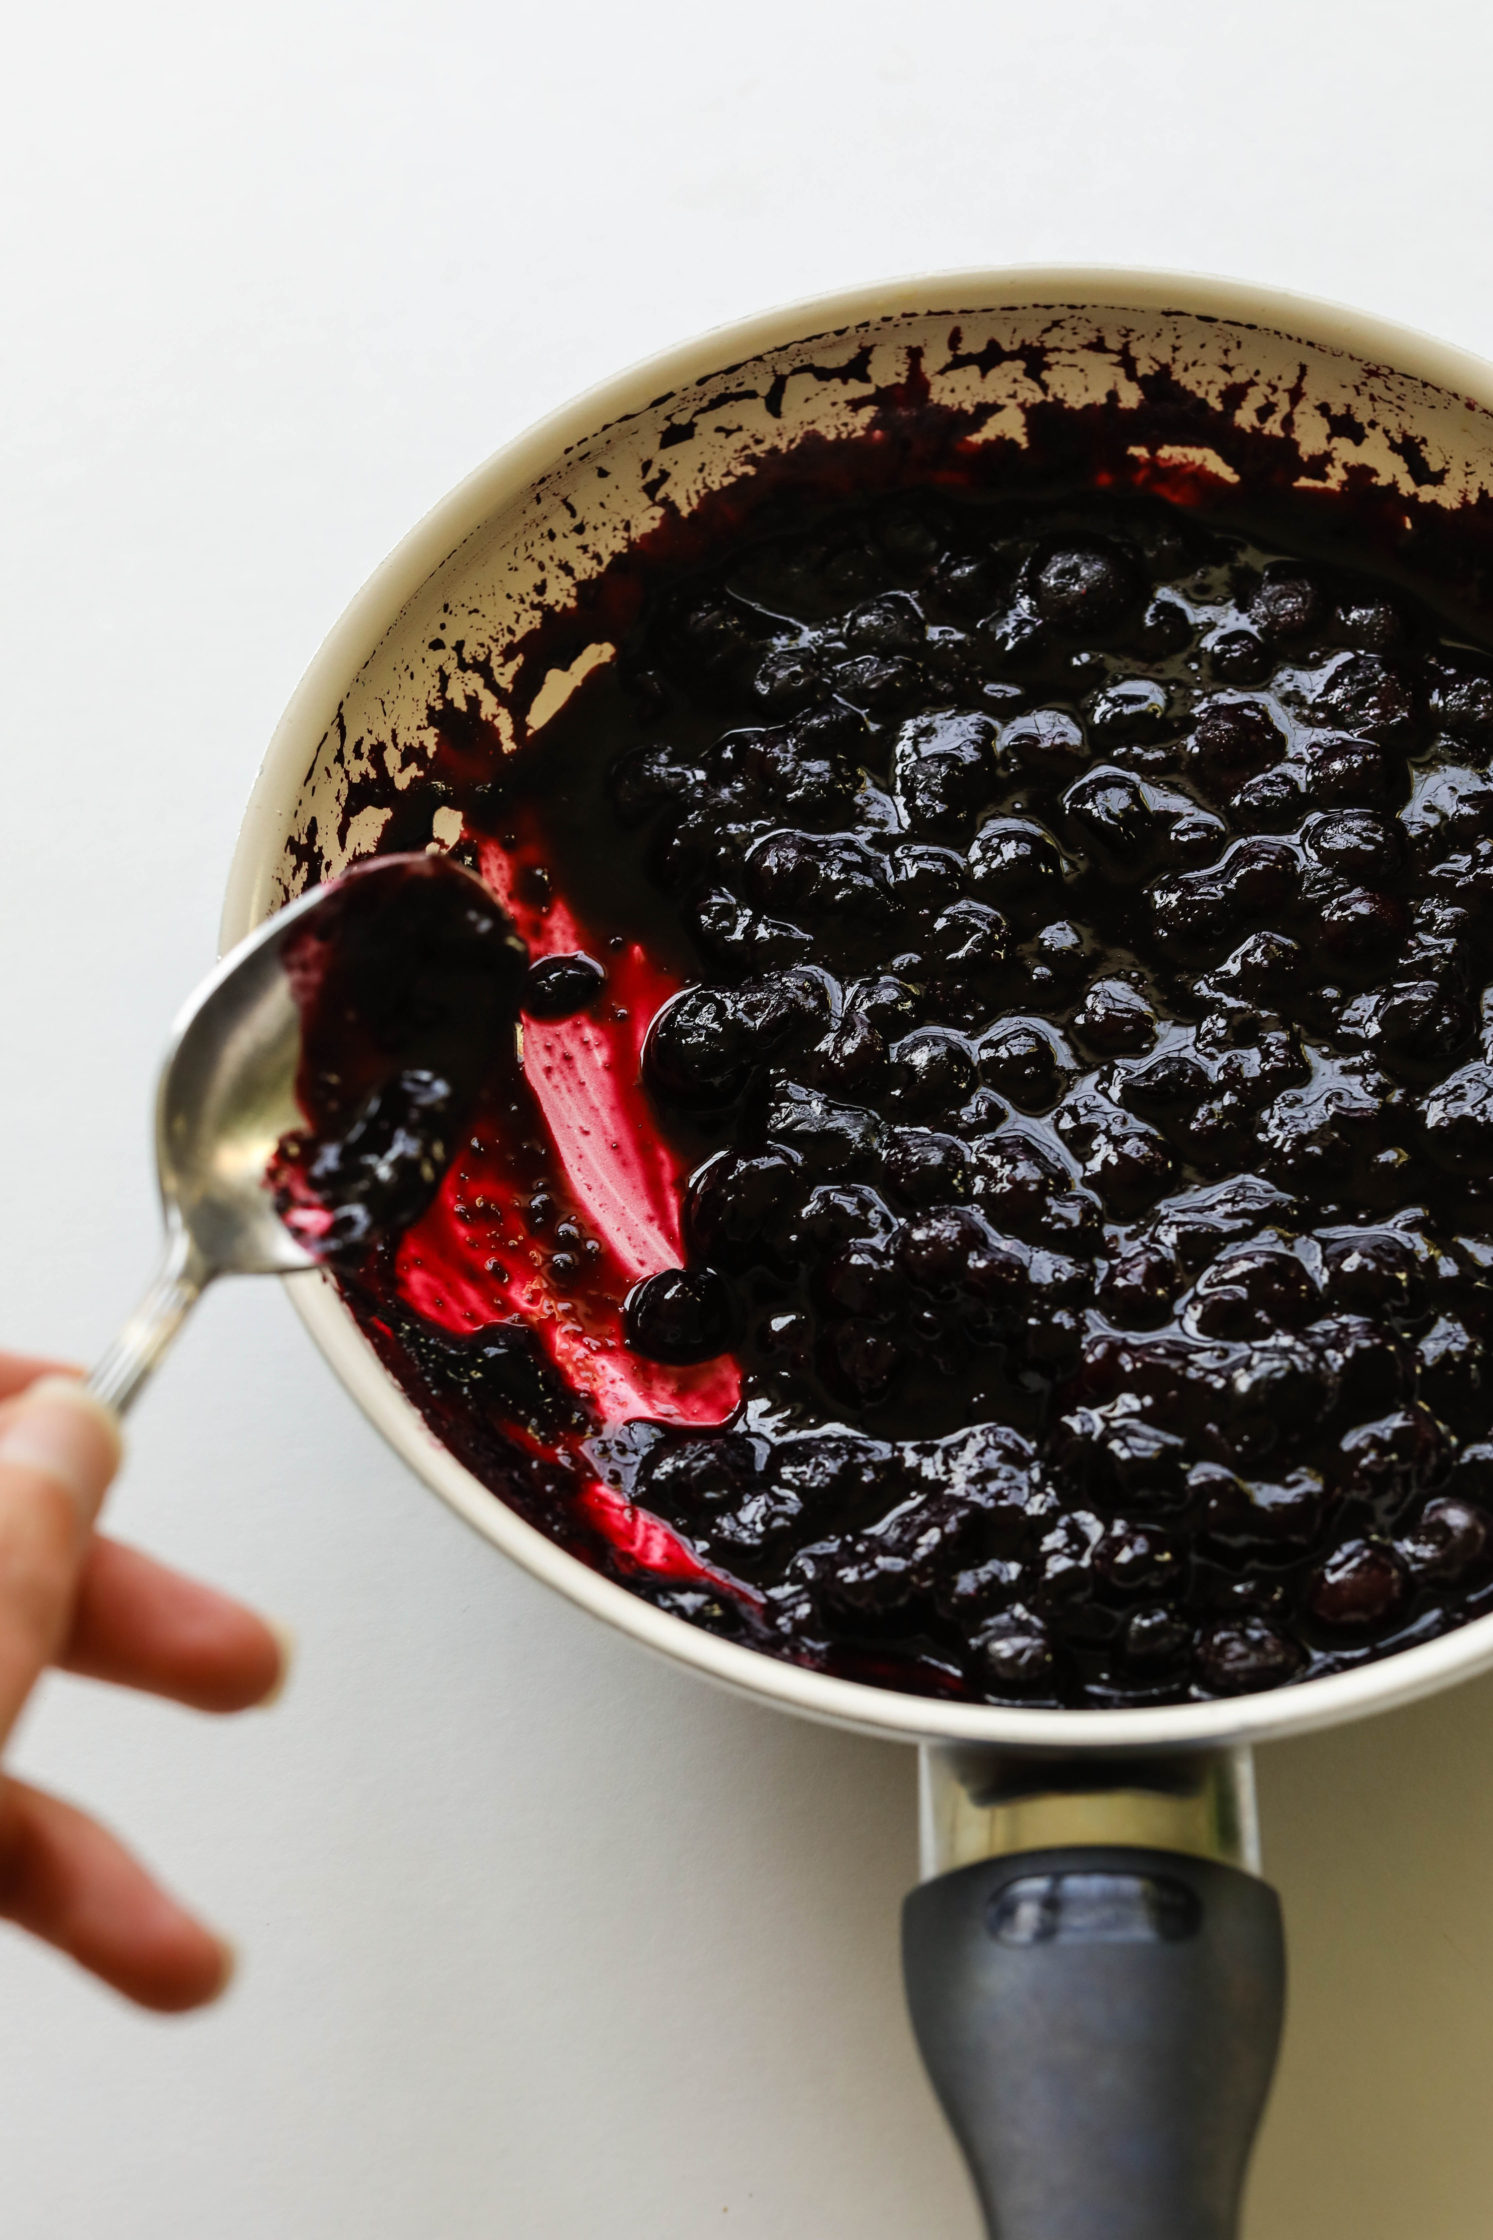 Blueberry Pie oatmeal compote